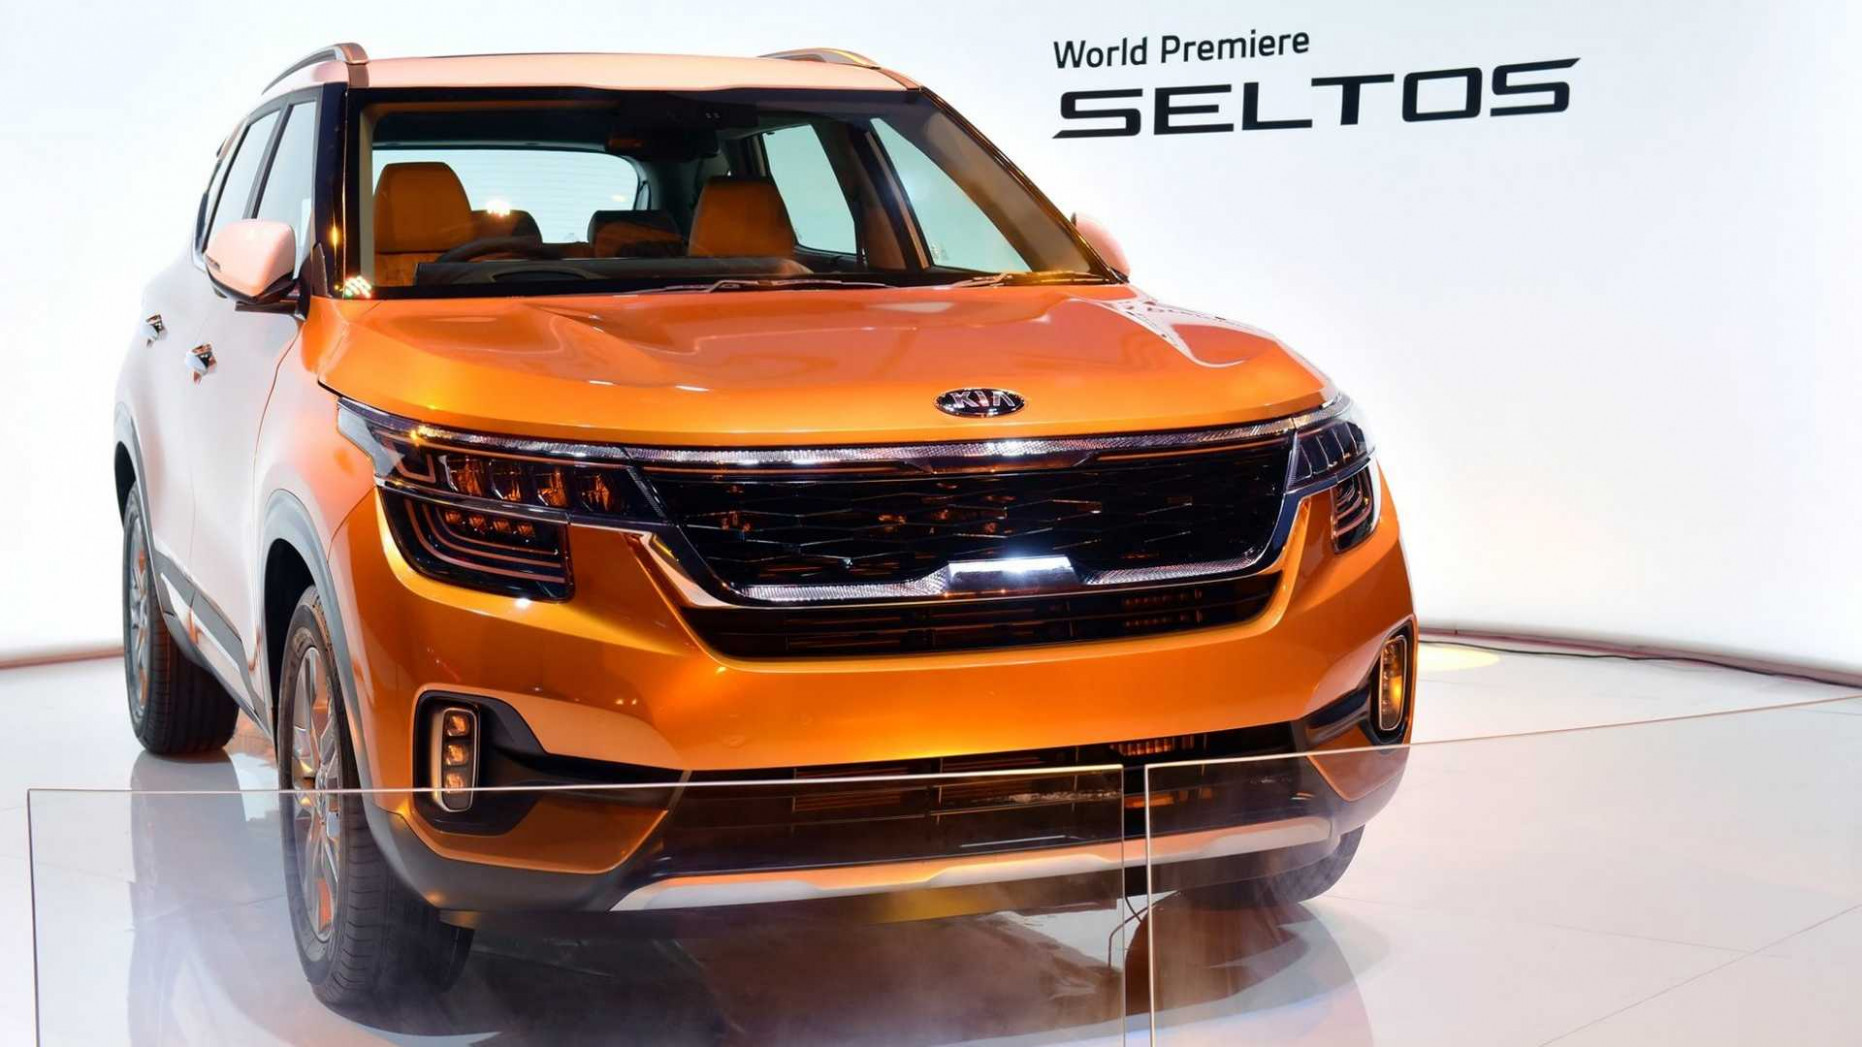 8 Kia Seltos Debuts As New Global Compact SUV